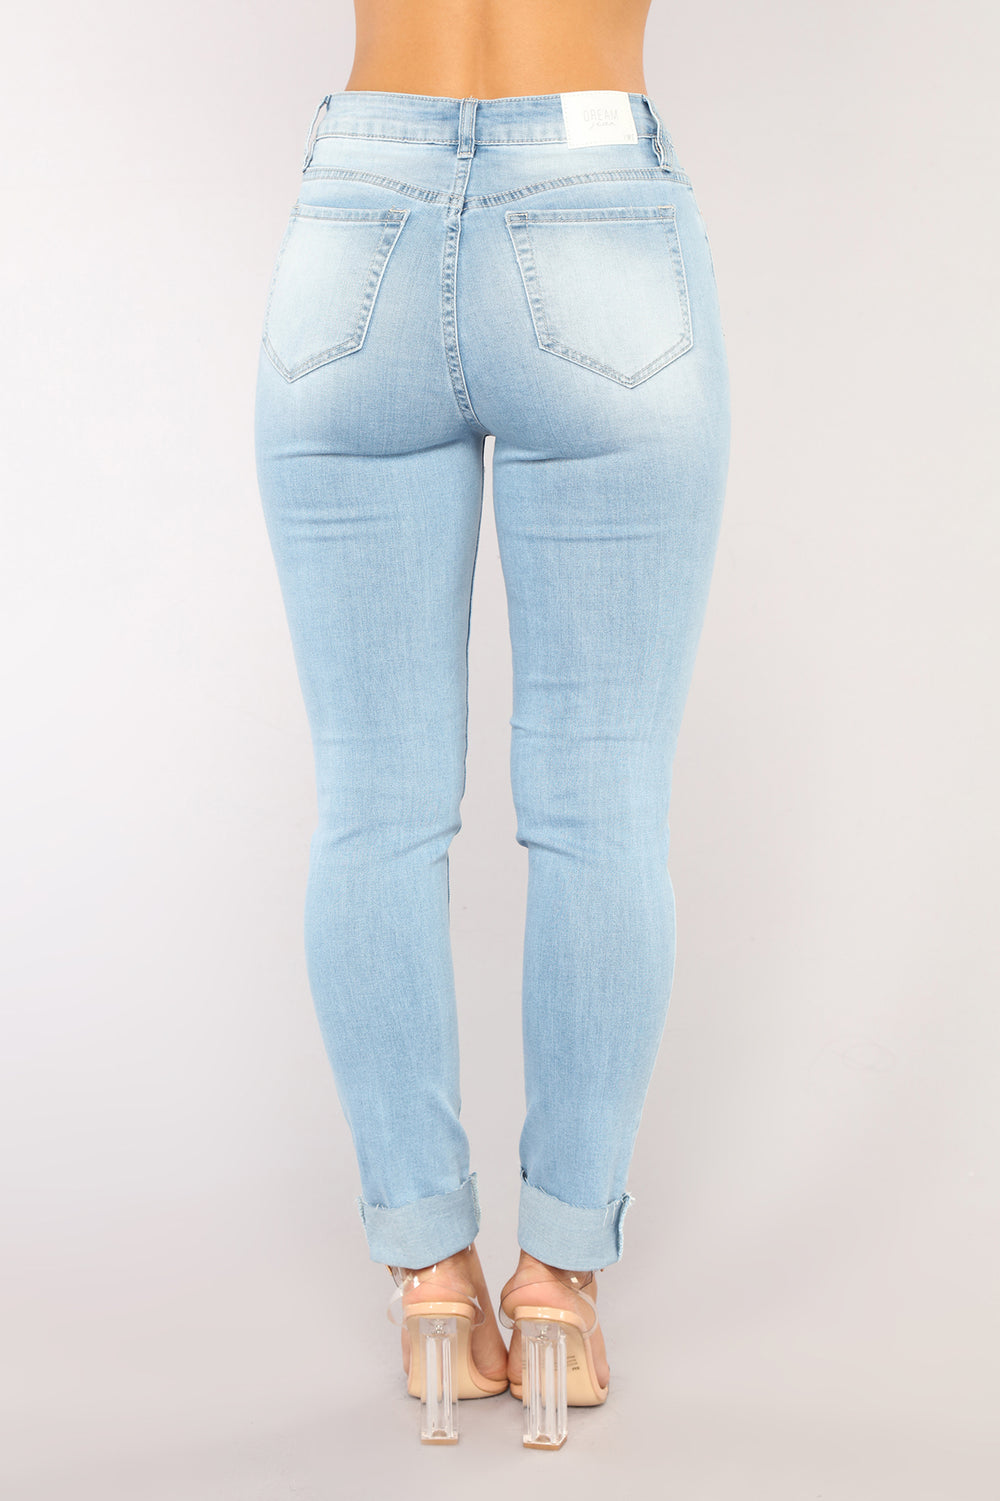 Sky Boyfriend Jeans - Light Blue Wash